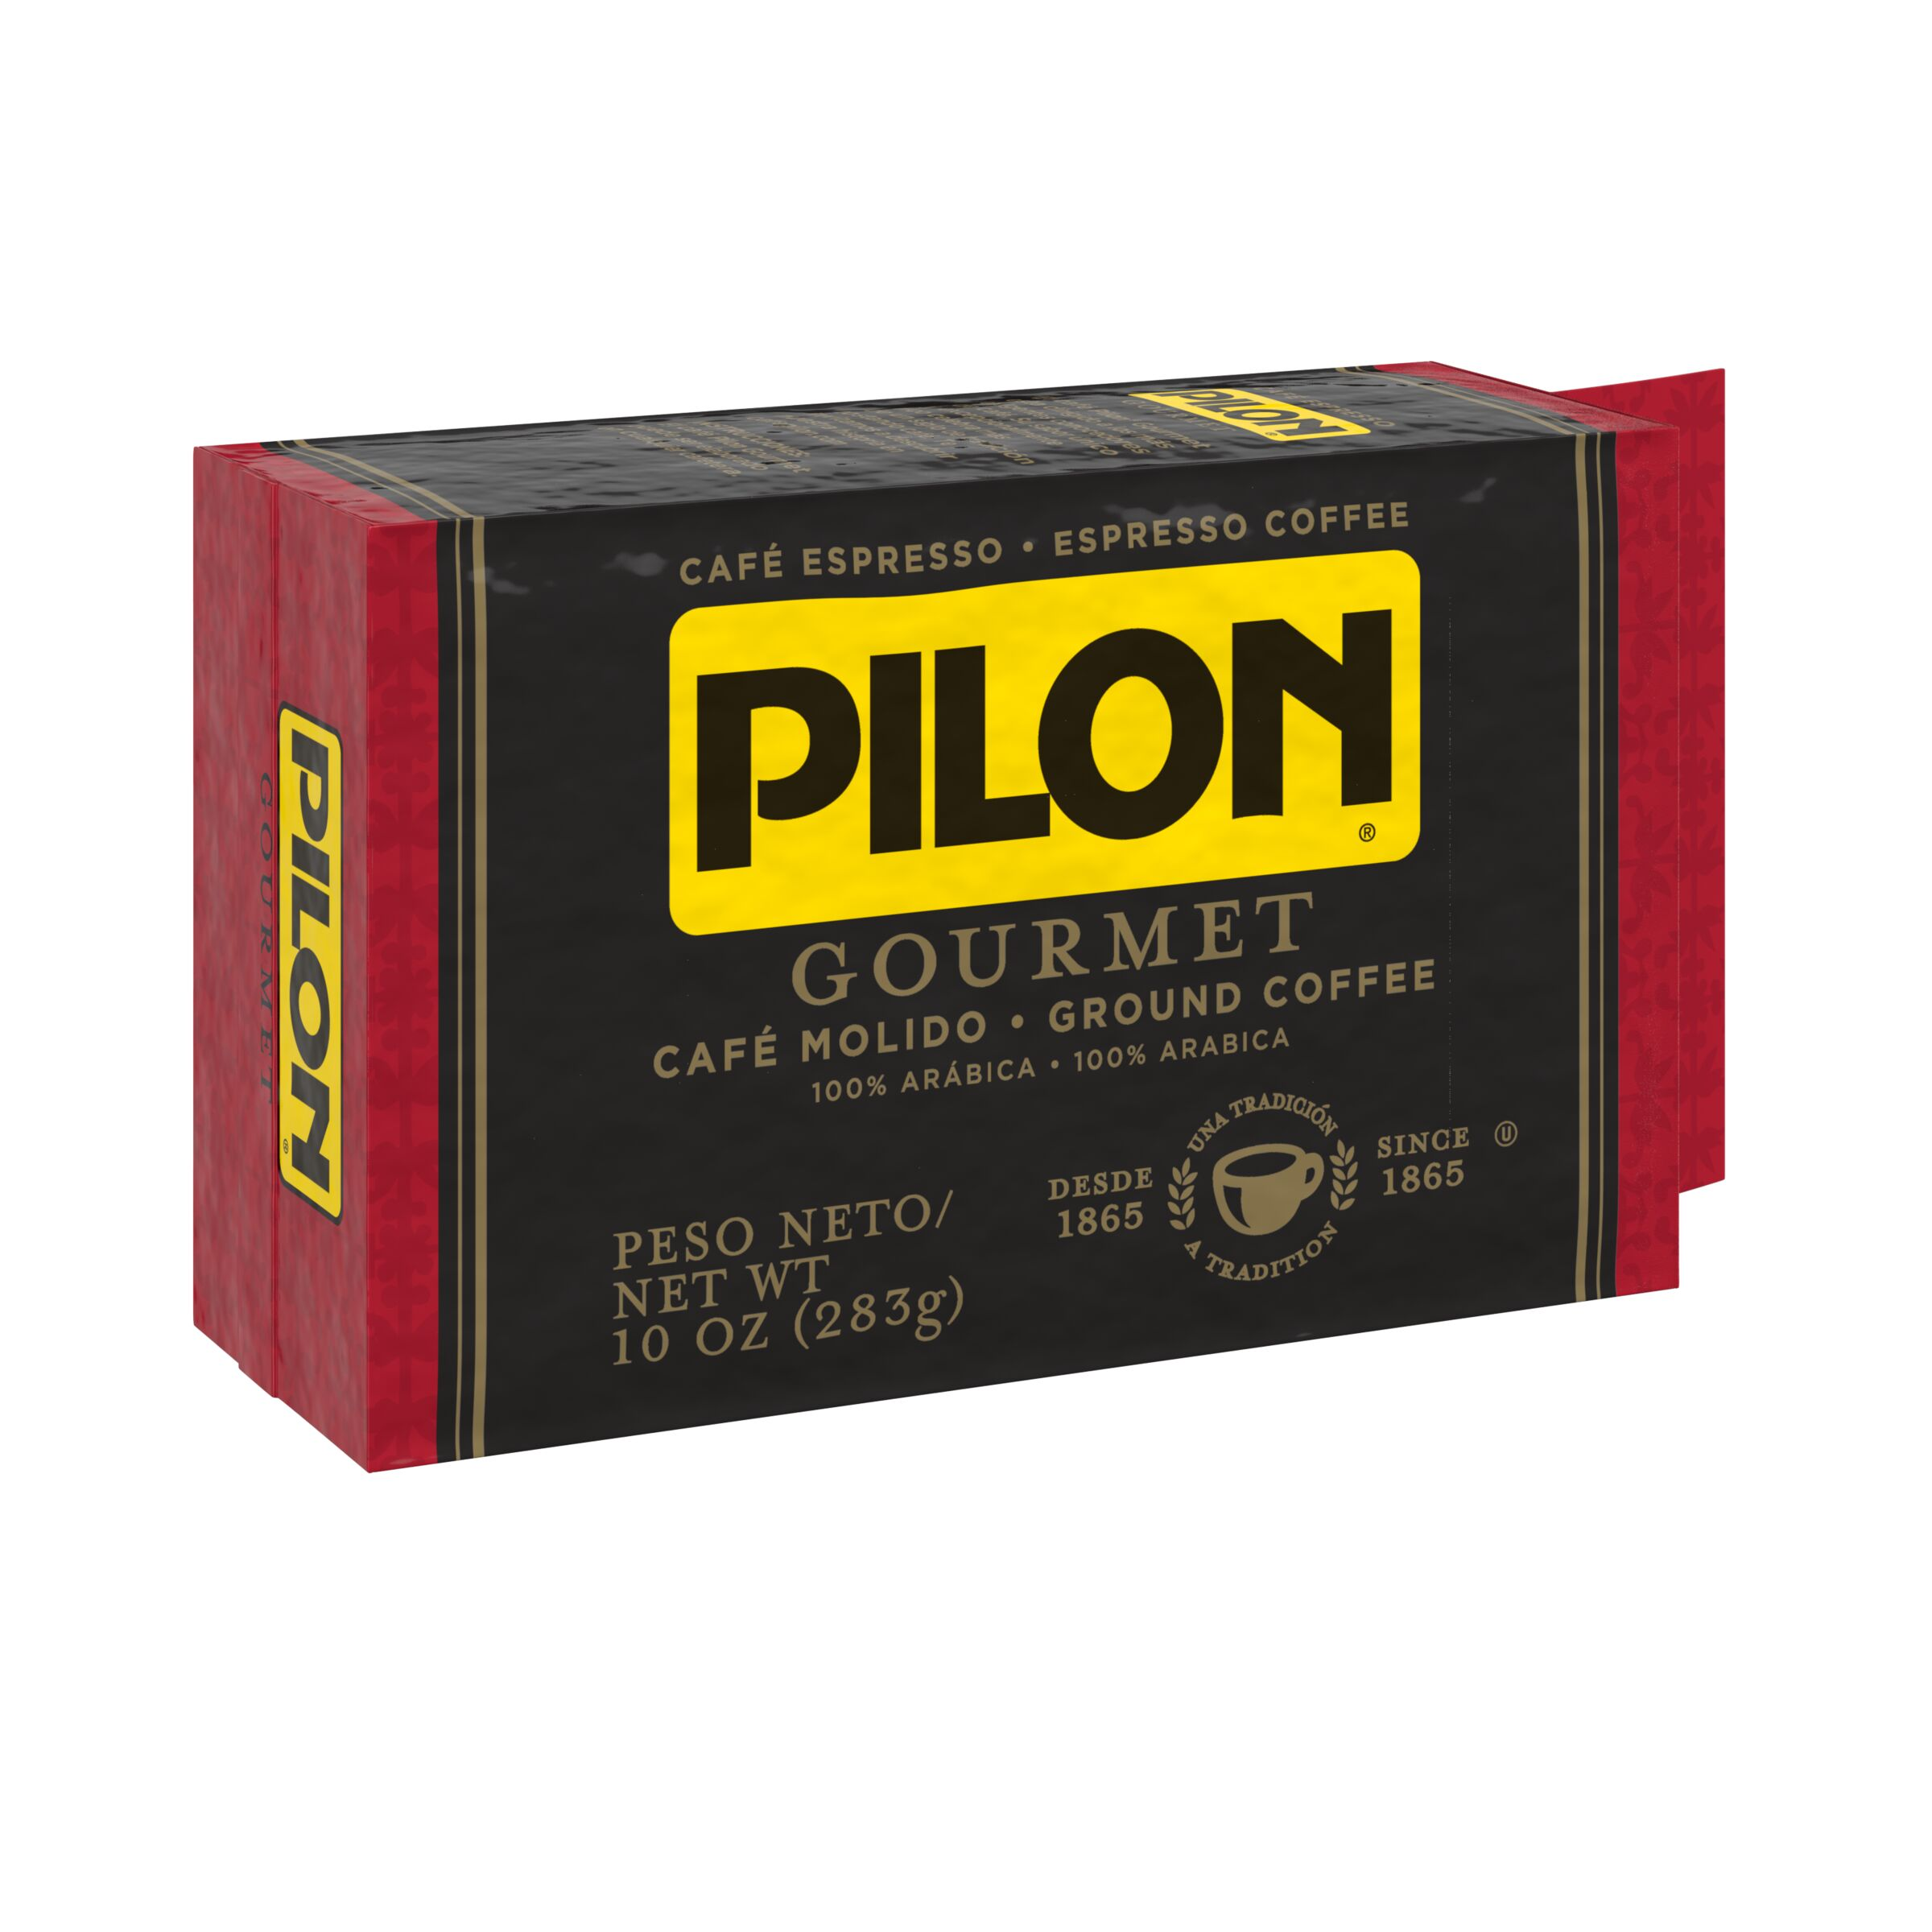 Cafe Pilon  Gourmet Espresso Coffee